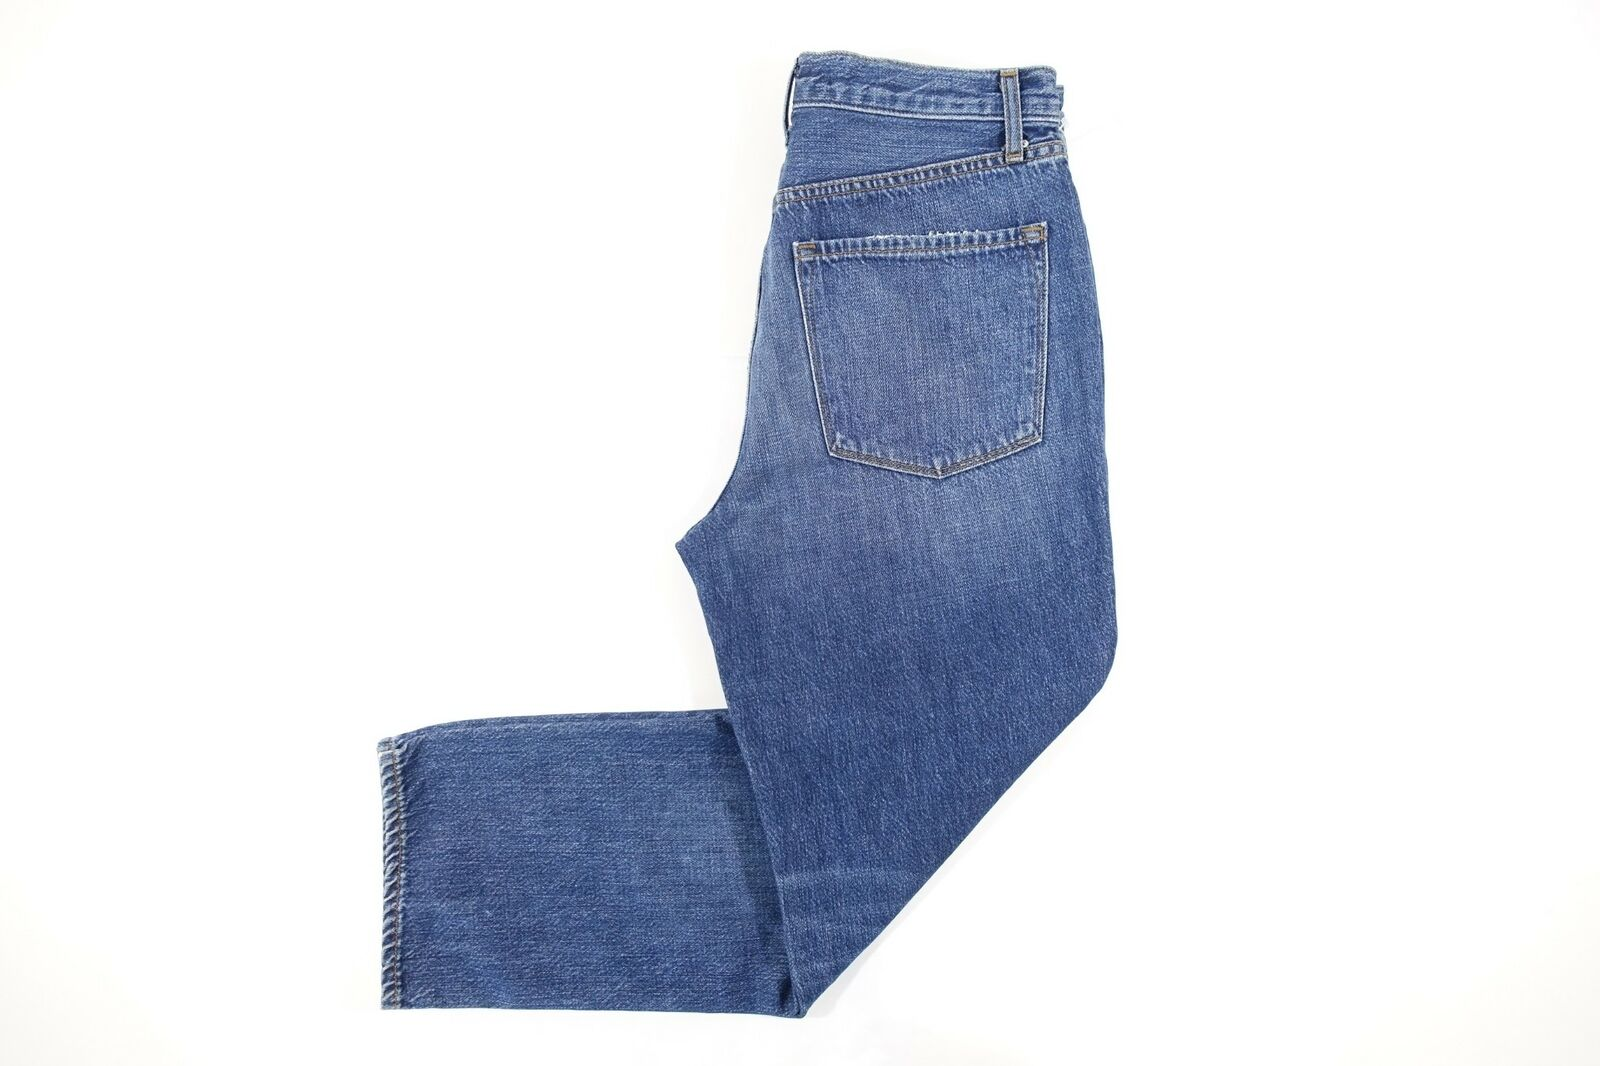 J BRAND FADED blueE 28 IVY RESURRECT HIGH RISE CROPPED STRAIGHT LEG JEANS WOMENS